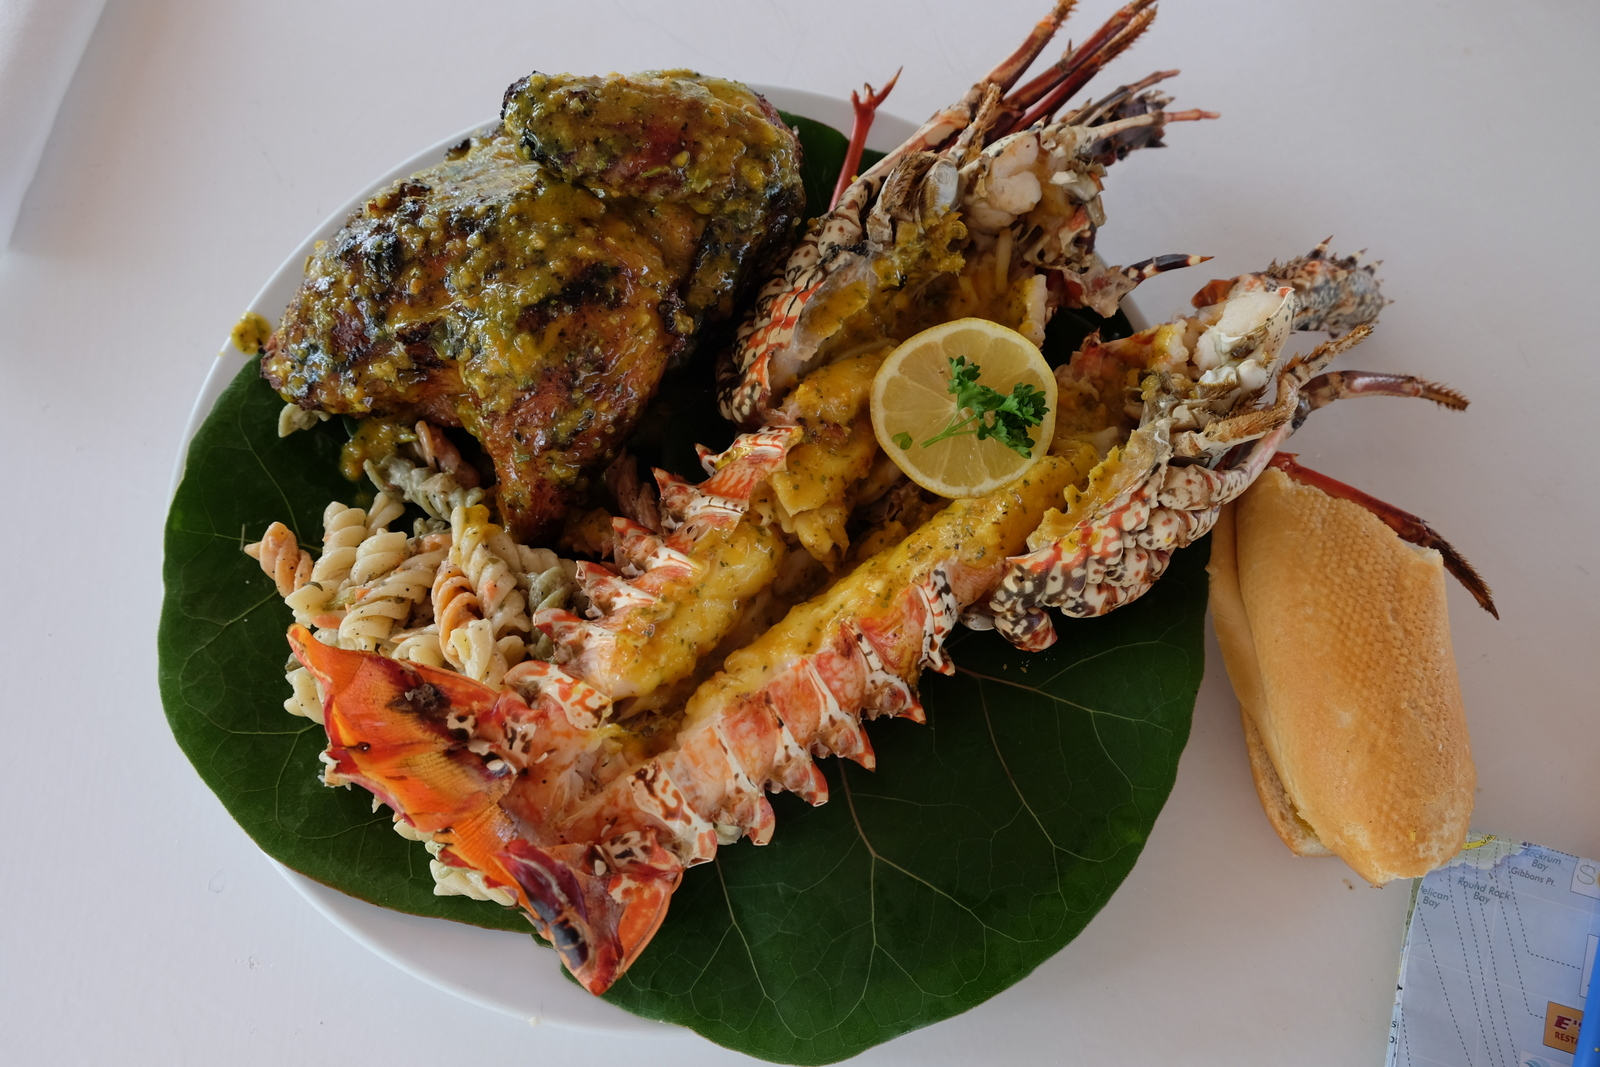 The seafood on Anguilla is super-fresh. And delicious. - JIM BYERS PHOTO